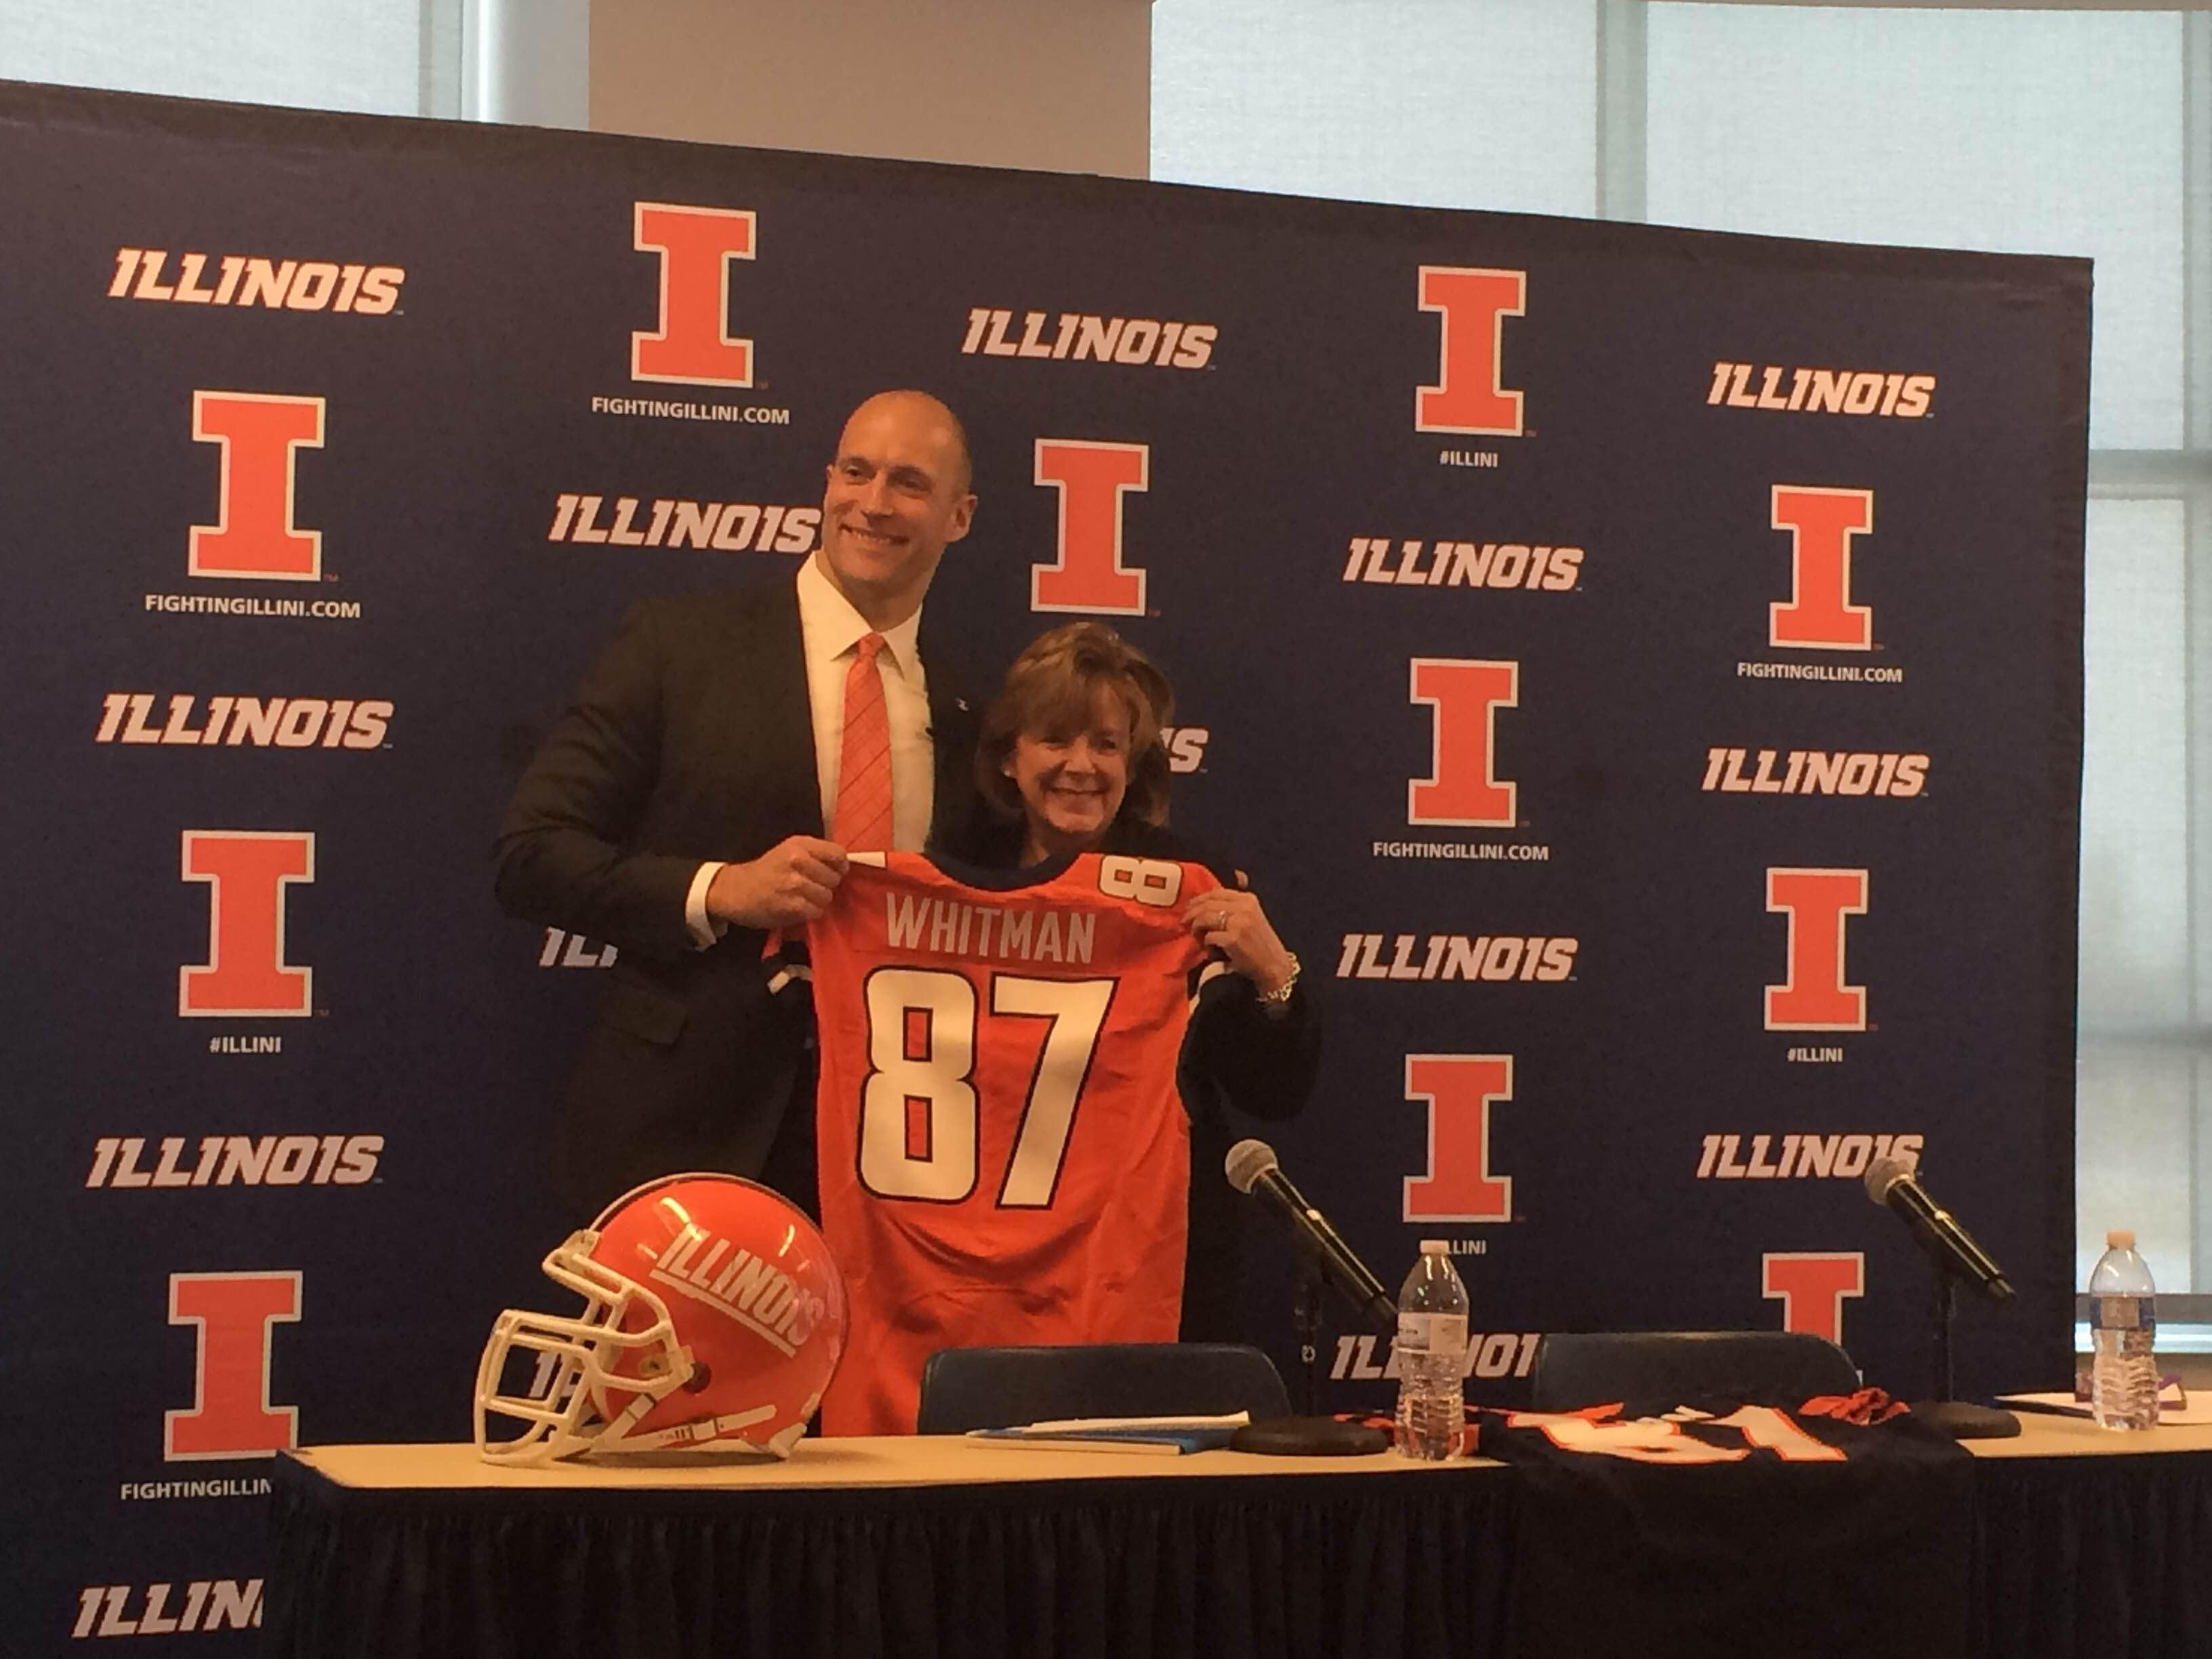 %2A%2A%2A%2810%26nbsp%3Ba.m.%29+The+Daily+Illini+sports+staff+will+be+attending+a+press+conference+held+at+10+a.m.